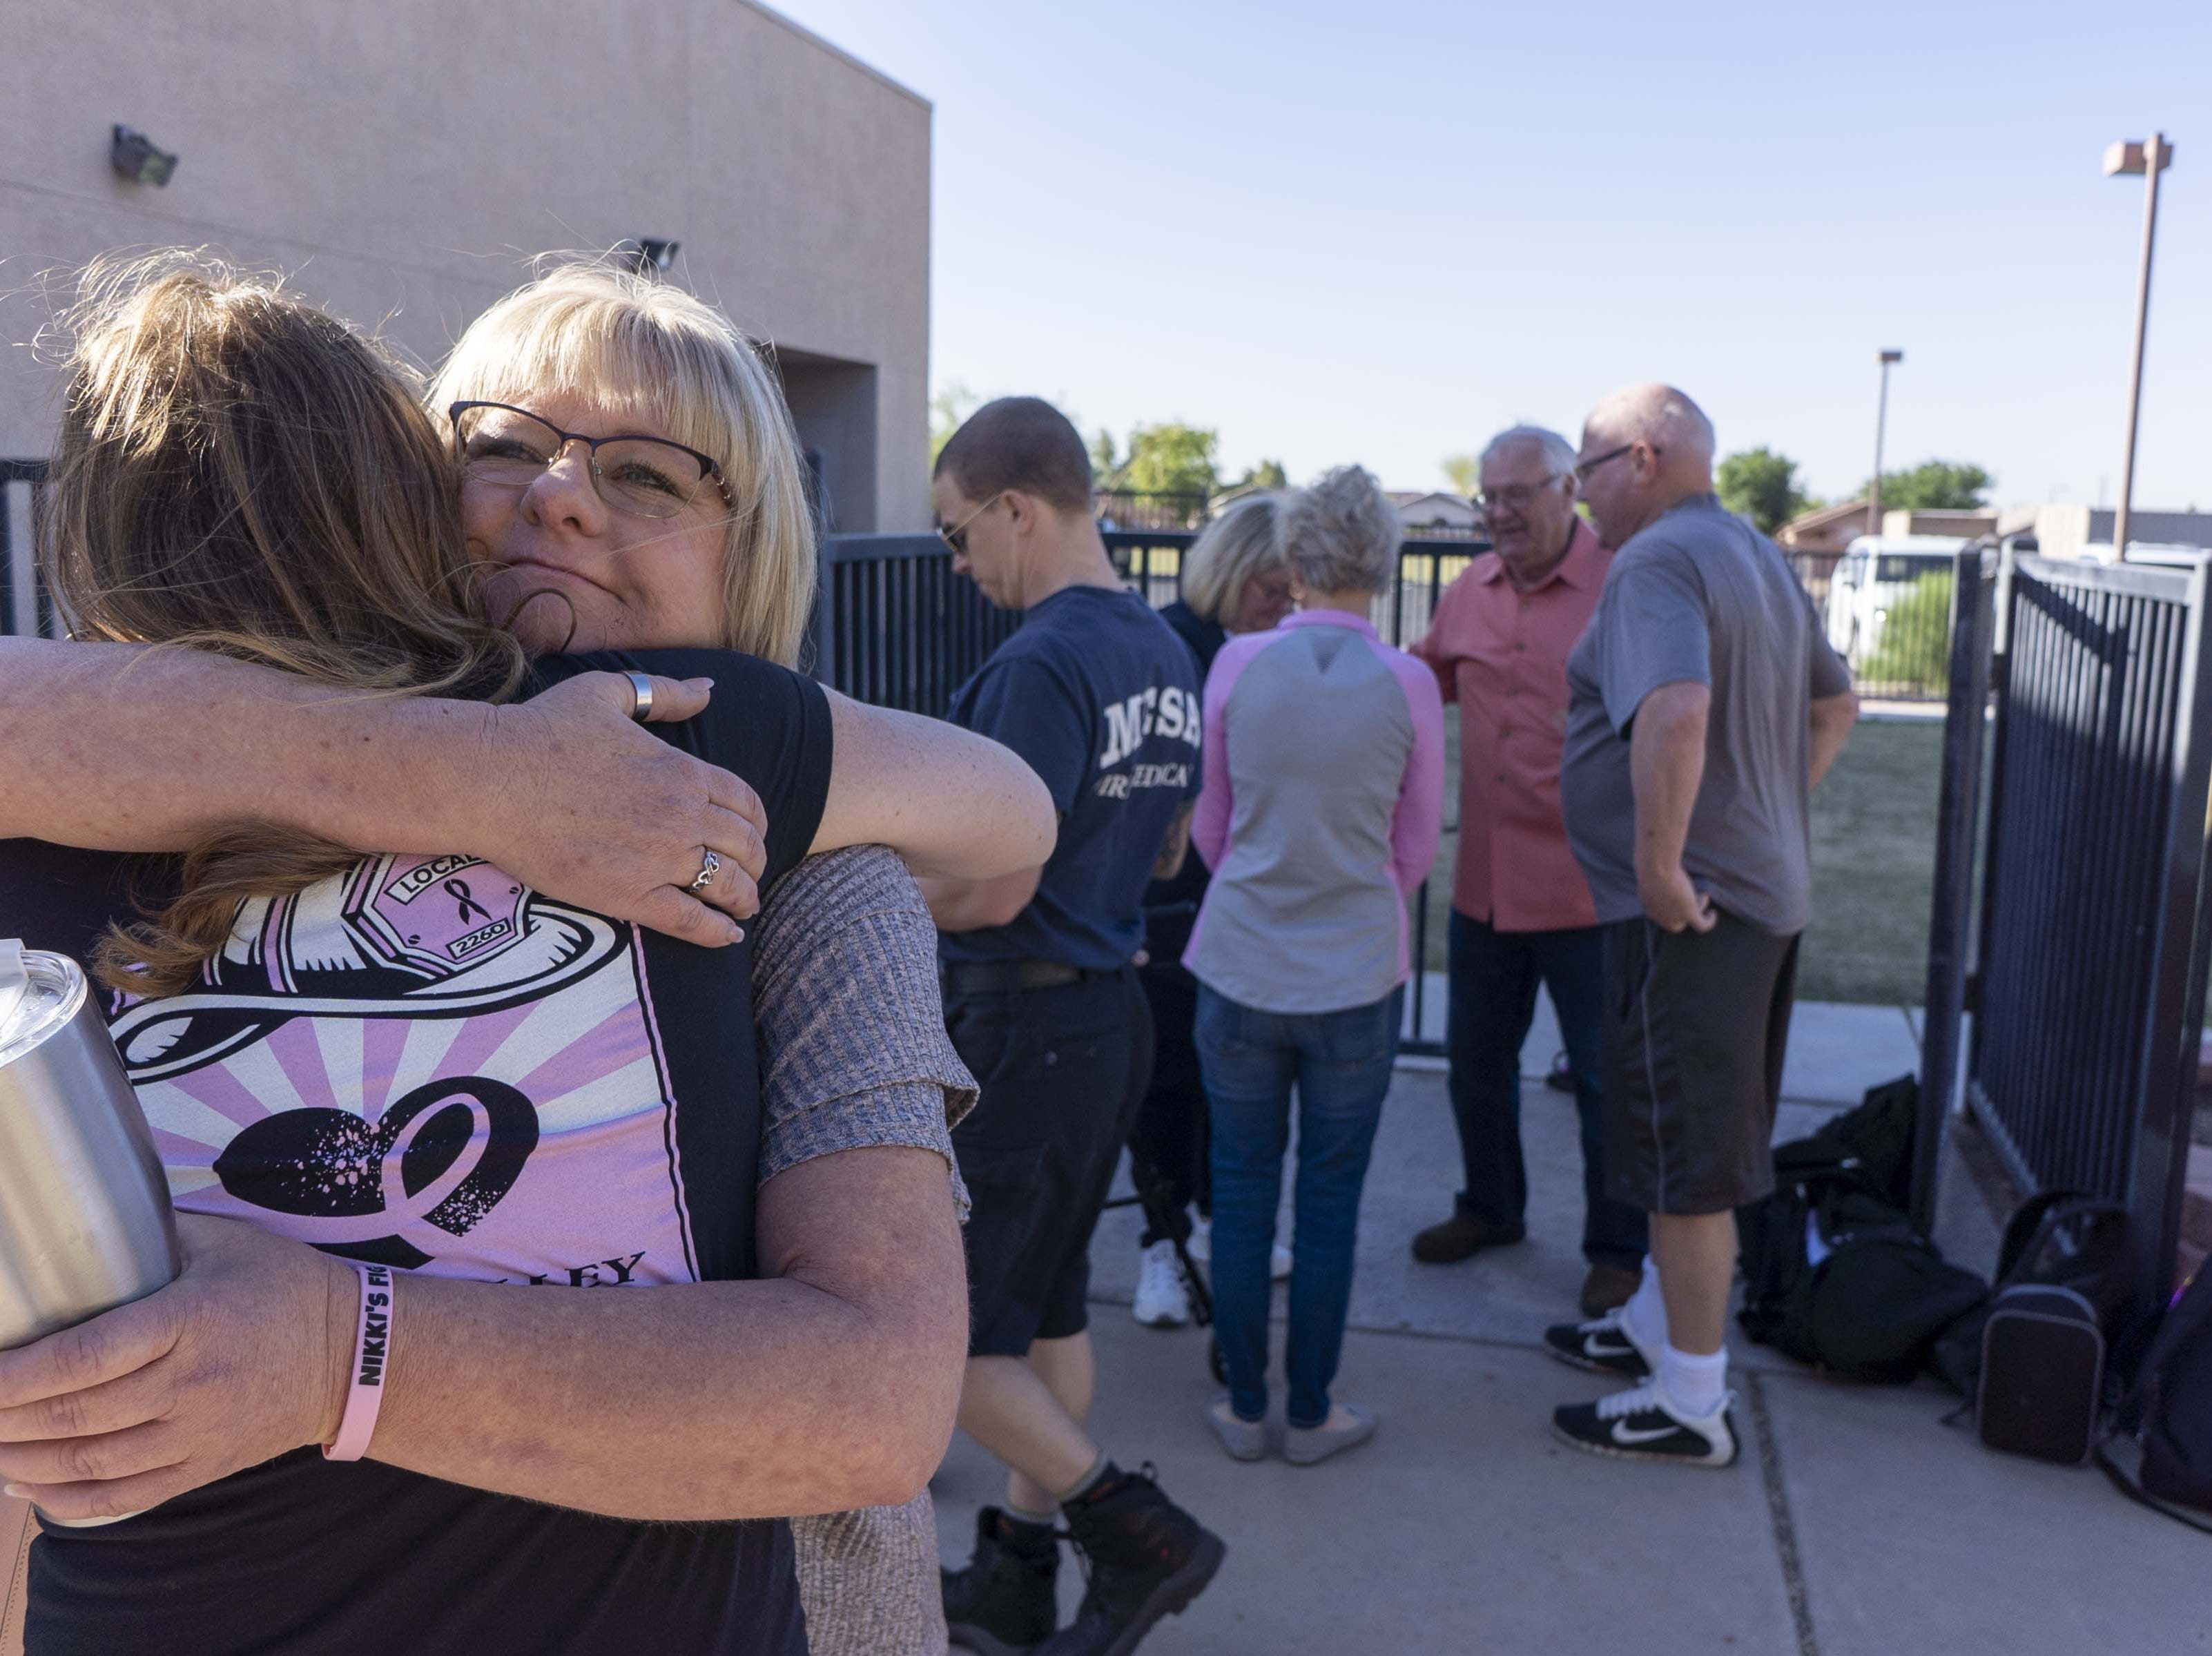 Adelle Imm gets a hug from family members at Faith Christian School on Wednesday, April 10th. Imm is a sister of Nikki Sullivan, who medically retired in 2015 due to occupational cancer and died last Wednesday. The fire crew will drive Abi,  Tim (Nikki's husband and retired fire captain) to the school.      Mesa fire crews bring 6-year-old Abi Sullivan to Faith Christian School on Wednesday, April 10th, riding in a fire engine #216. Abi is the daughter of Nikki Sullivan, who medically retired in 2015 due to occupational cancer and died last Wednesday. The fire crew will drive Abi,  Tim (Nikki's husband and retired fire captain) to the school.